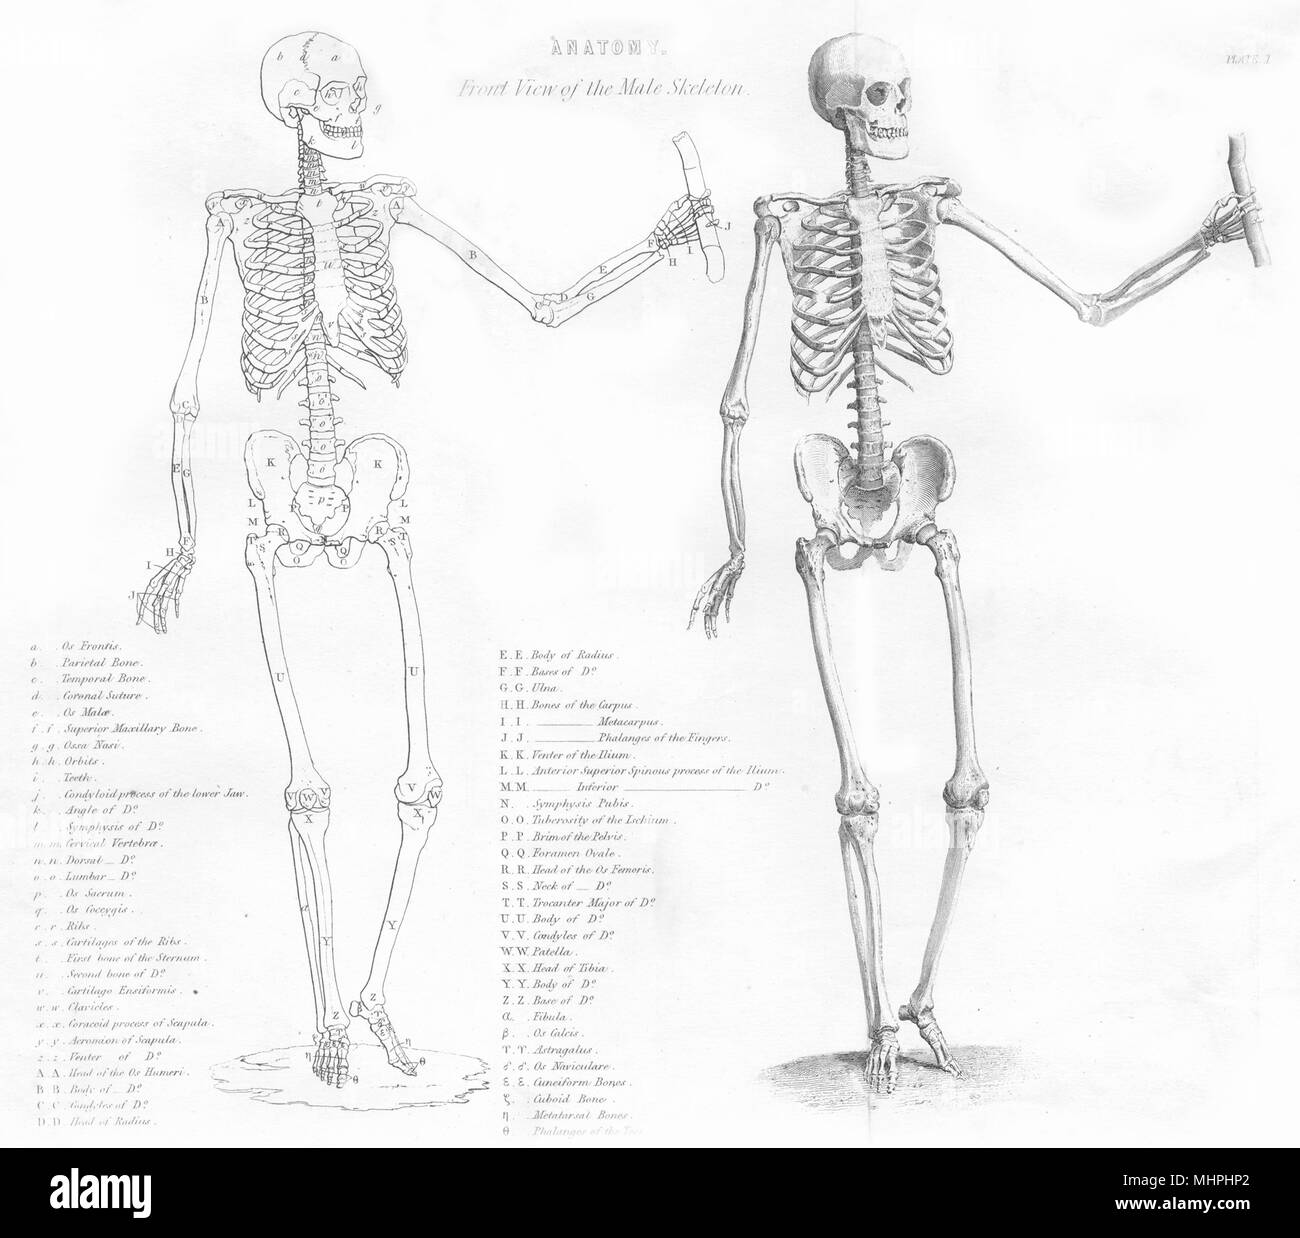 Biology Anatomy Front View Of The Male Skeleton 1880 Old Antique